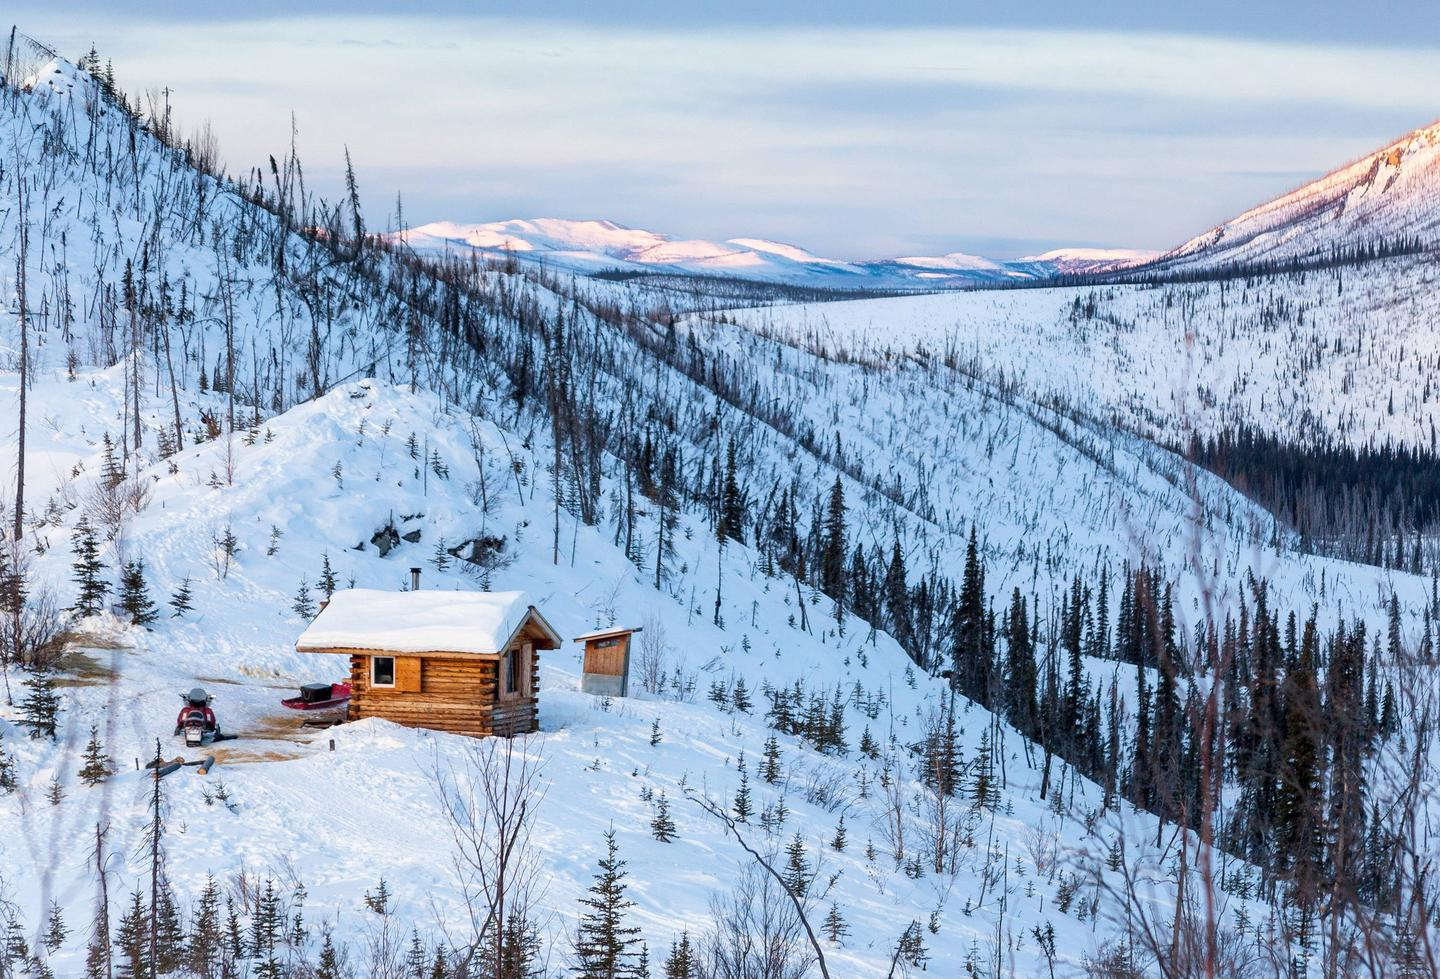 Cabin and snow-covered mountains at duskCaribou Bluff and Fossil Creek valley